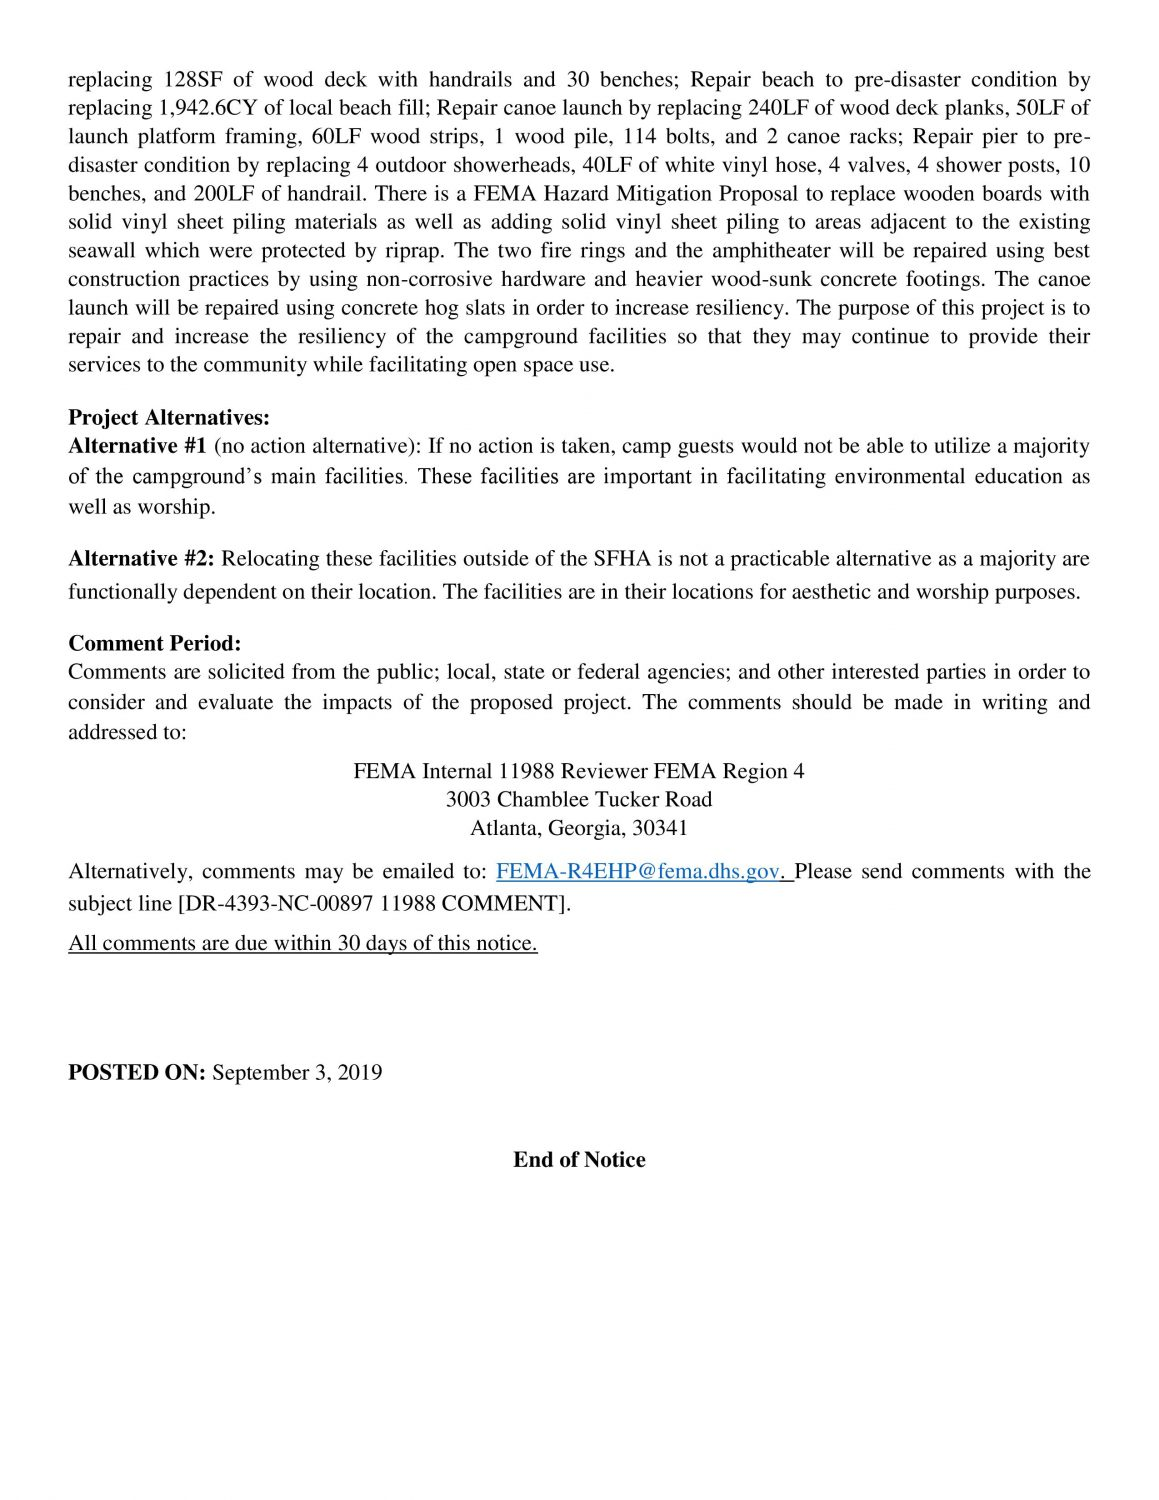 20190830 EHP 4393-00897 Final Public Notice - Posted Date Added 09-03-2019-page-002